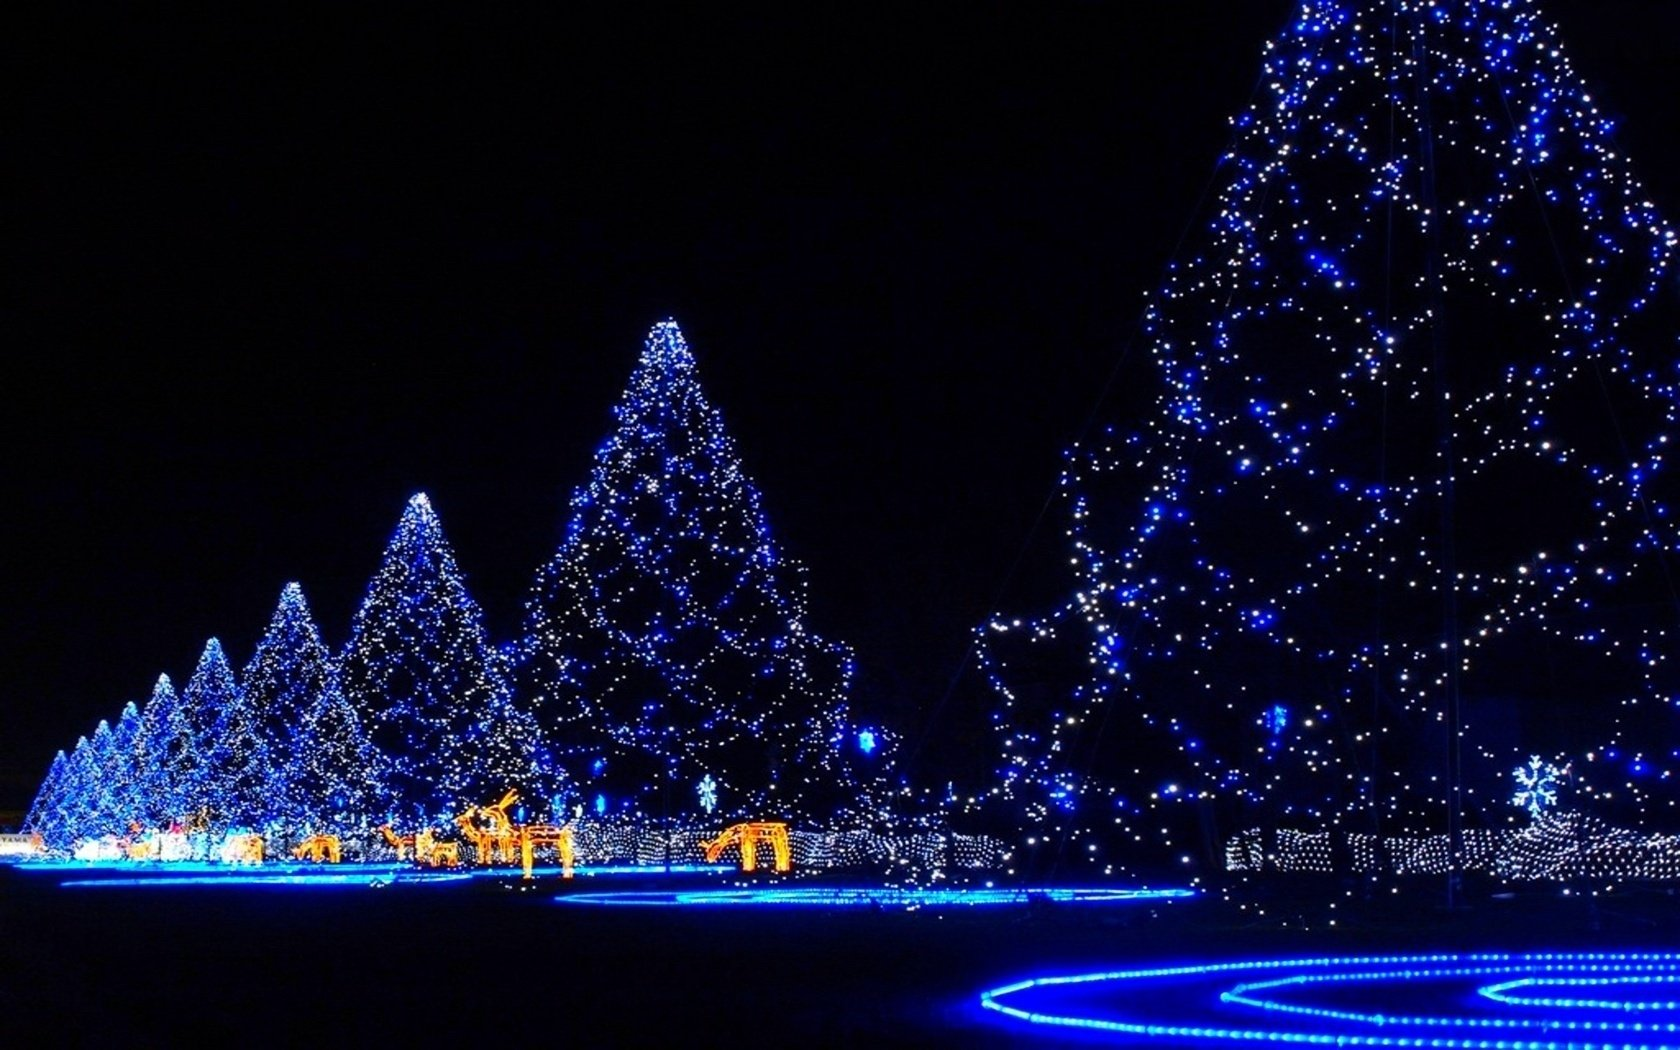 night christmas decoration wallpaper and background image